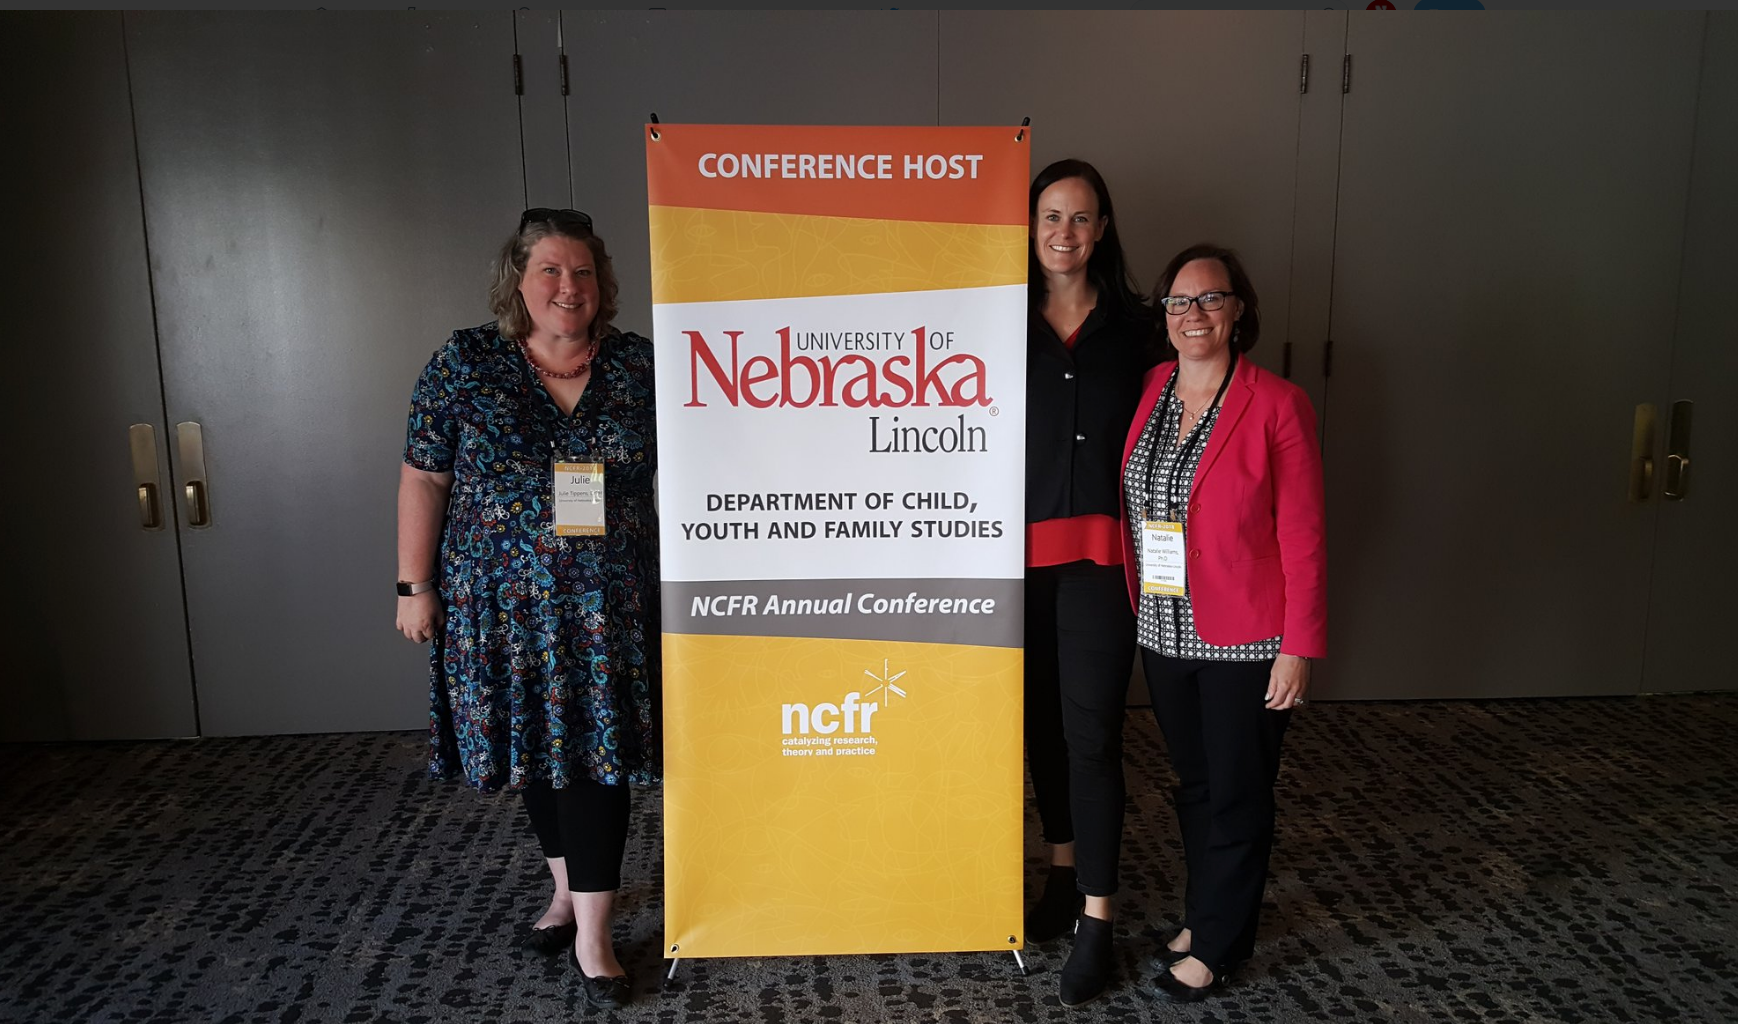 CYAF hosted the 2018 NCFR conference